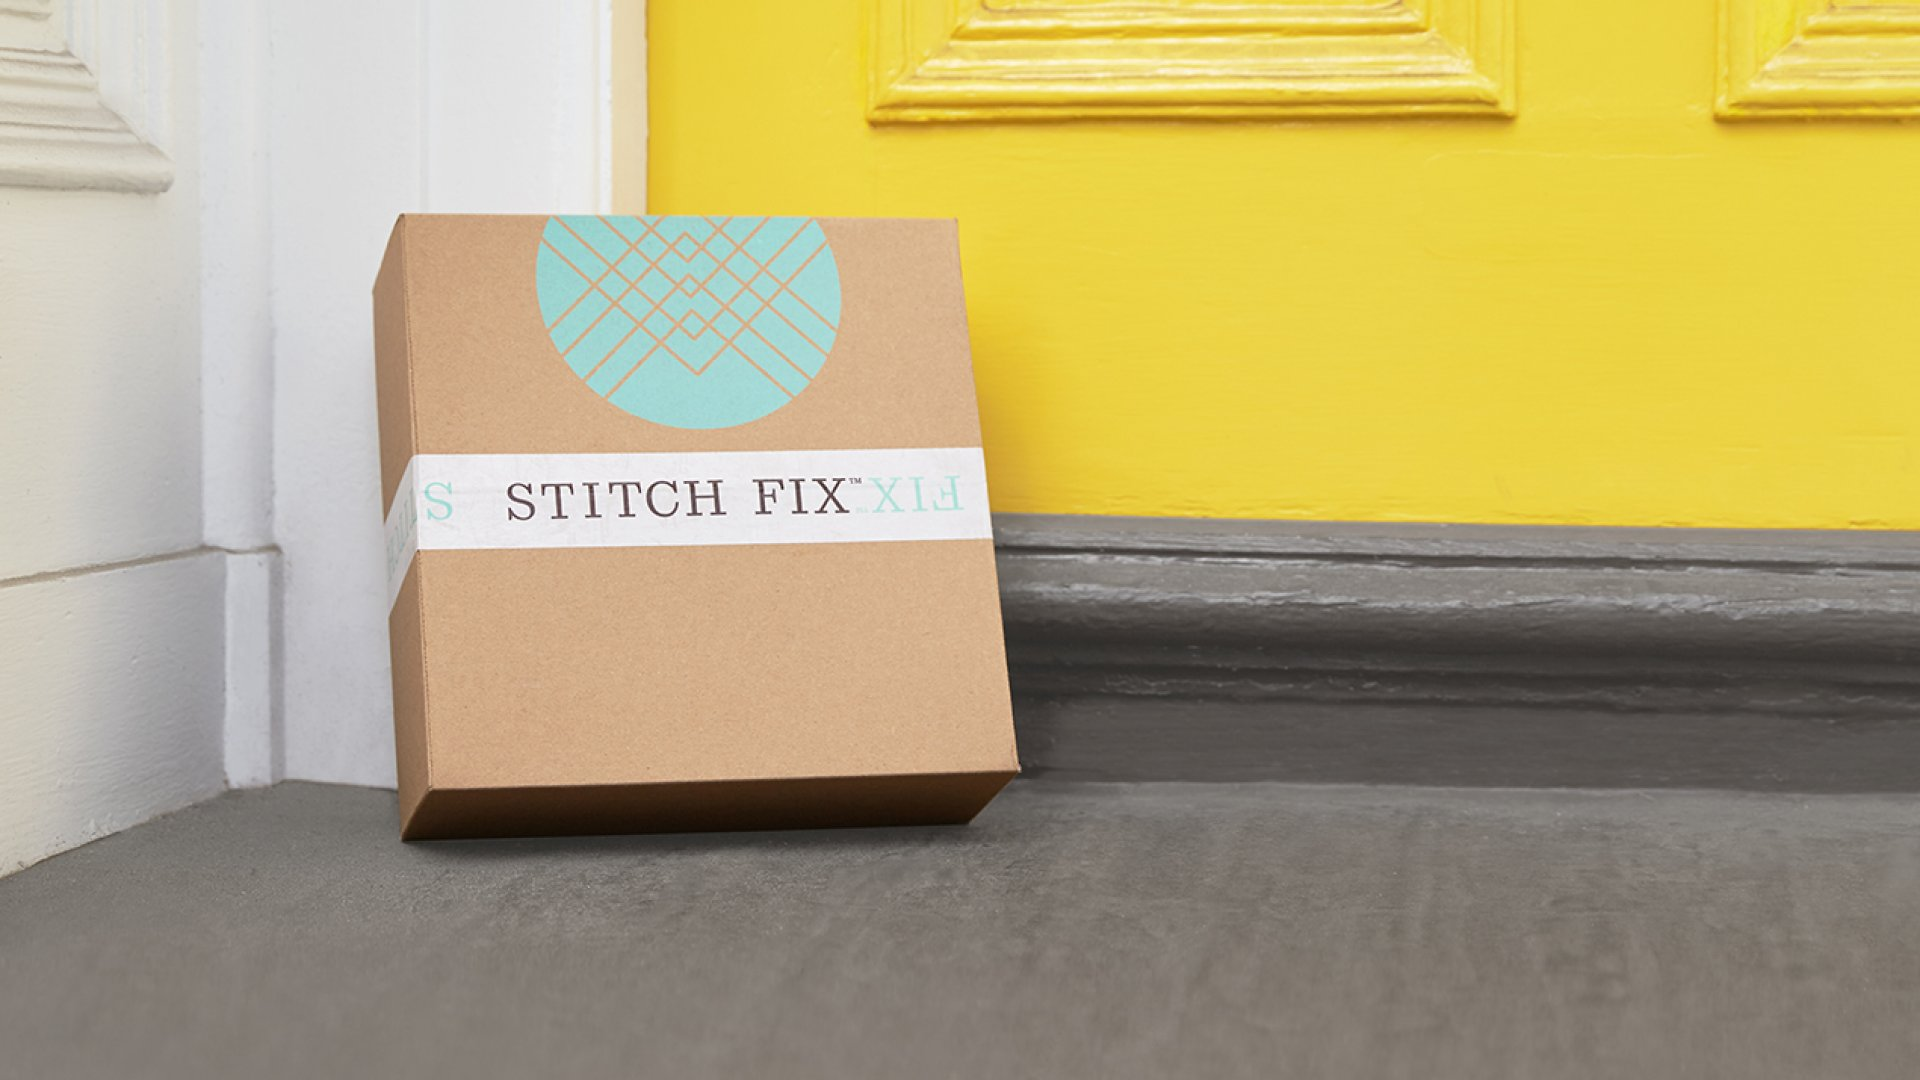 Stitch Fix IPO Disappoints, Thanks to the Amazon Effect